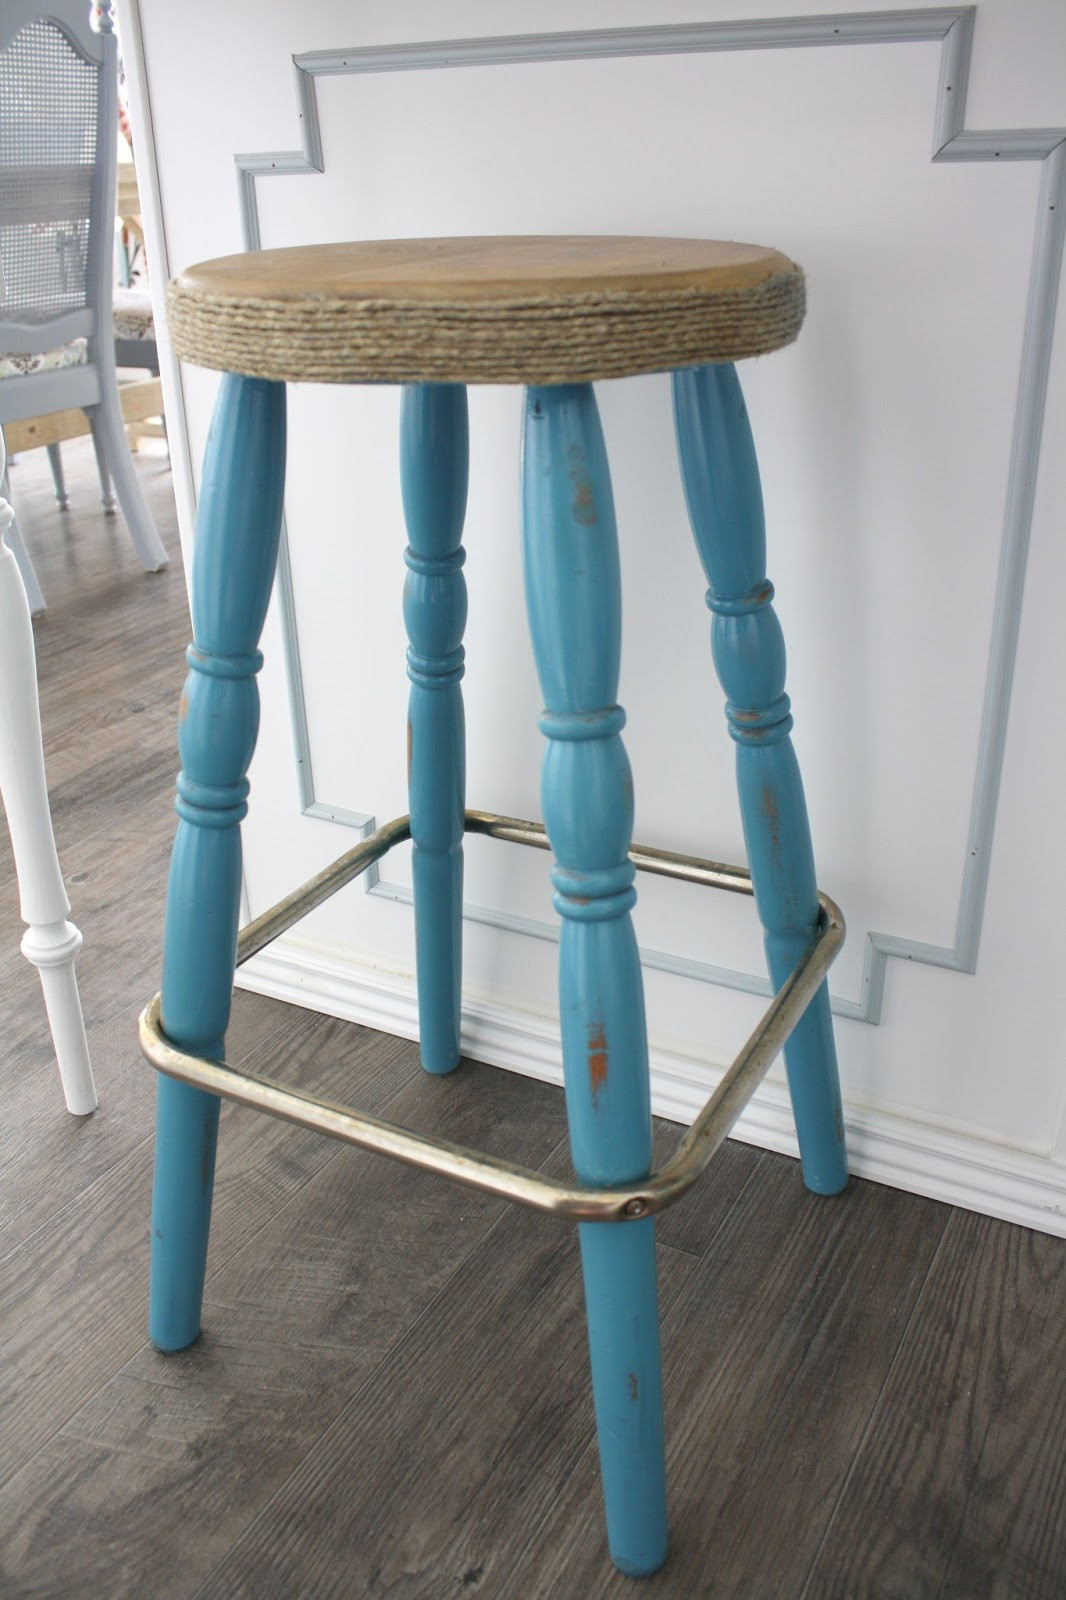 Best ideas about DIY Bar Stools . Save or Pin Nifty Thrifty Momma DIY Easy Bar Stool Makeover Now.